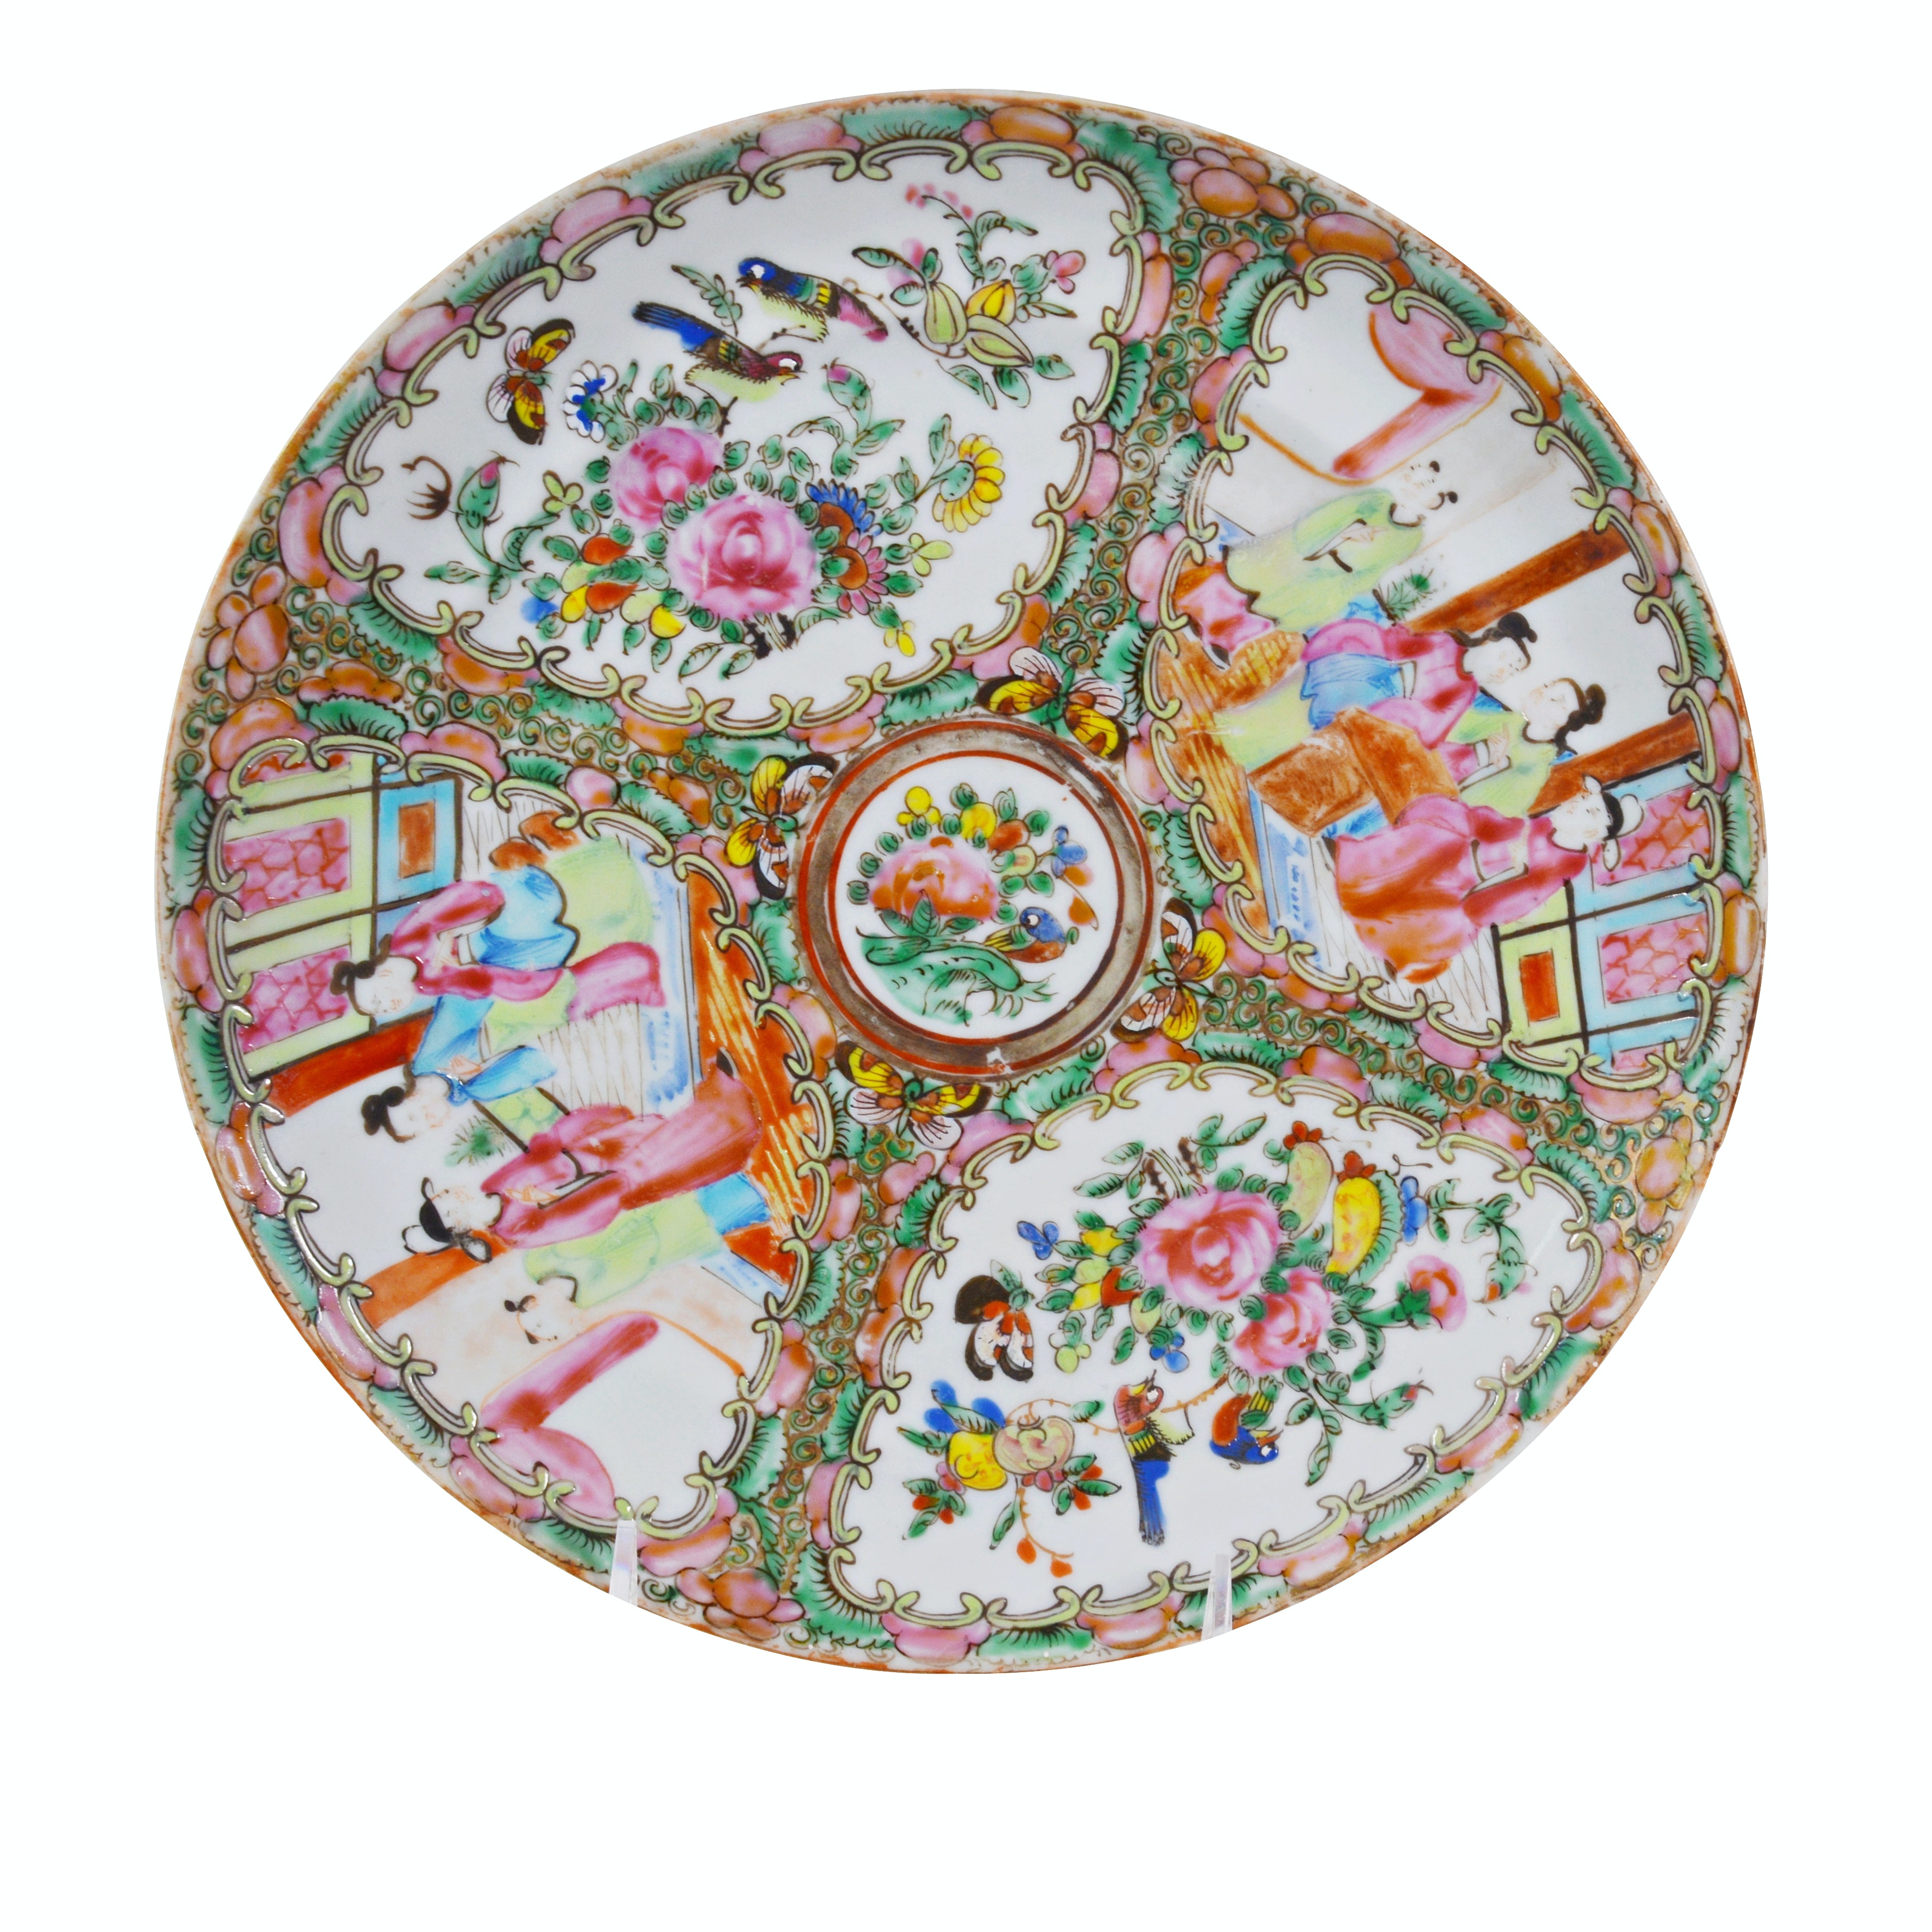 Chinese Rose Medallion Porcelain Dinner Plate, Late 19th Century